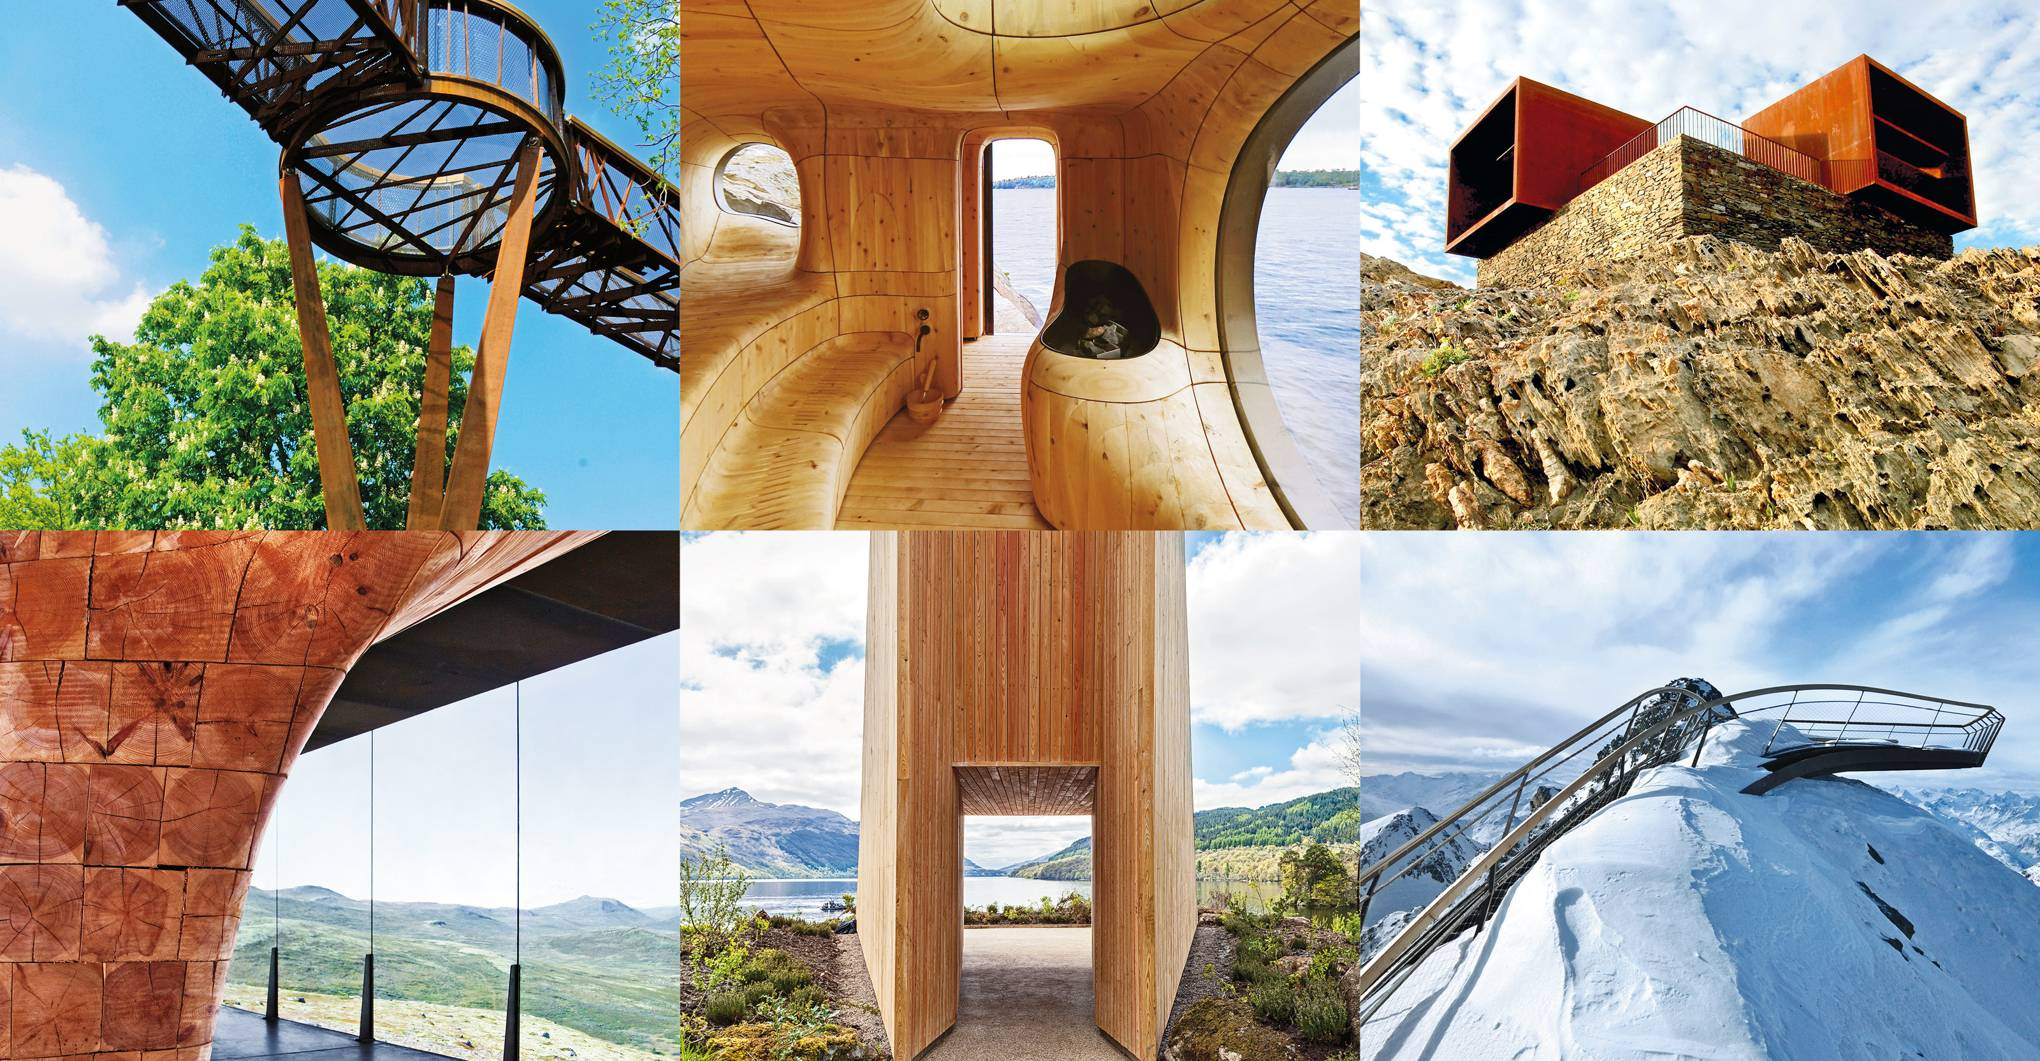 The architecture trend: mind-bending viewpoints